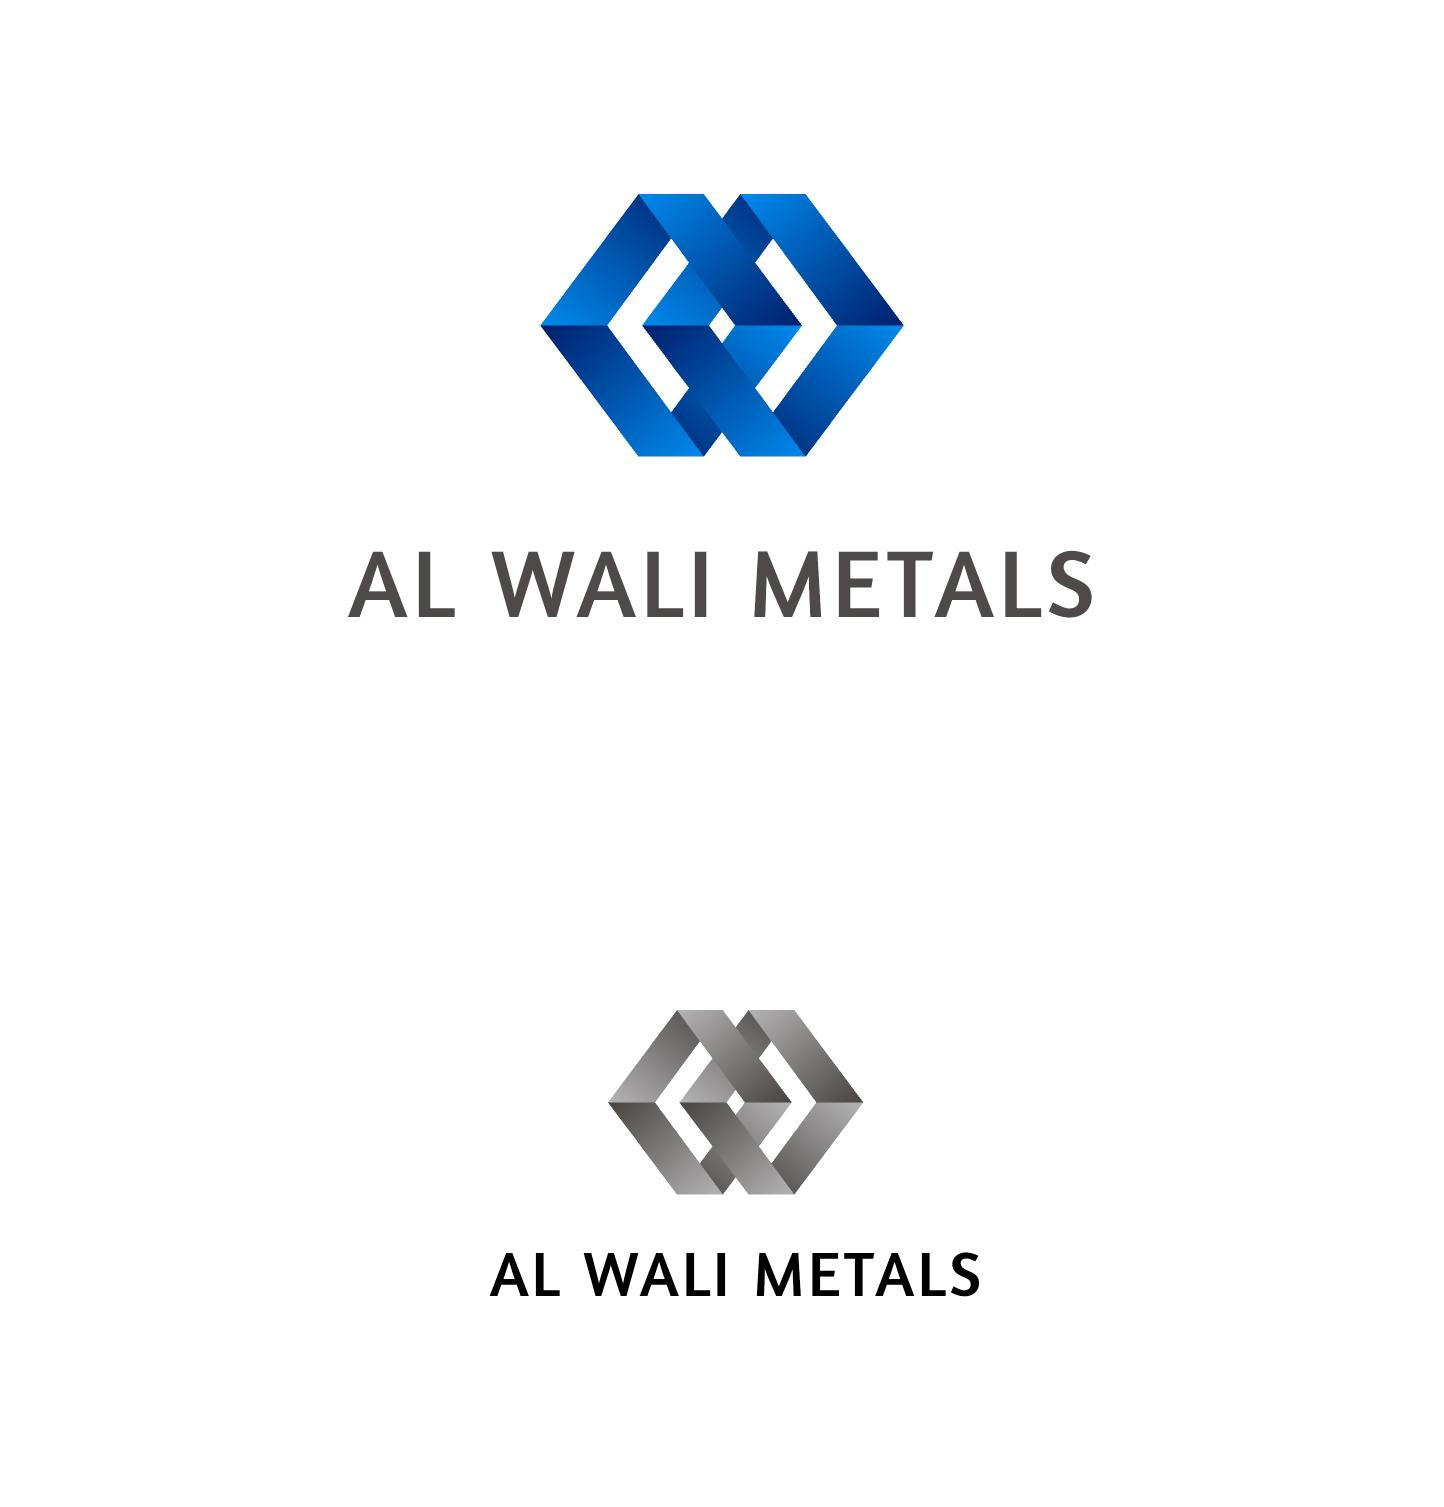 Logo Design by ZAYYADI AHMAD - Entry No. 137 in the Logo Design Contest Inspiring Logo Design for Al Wali Metals.